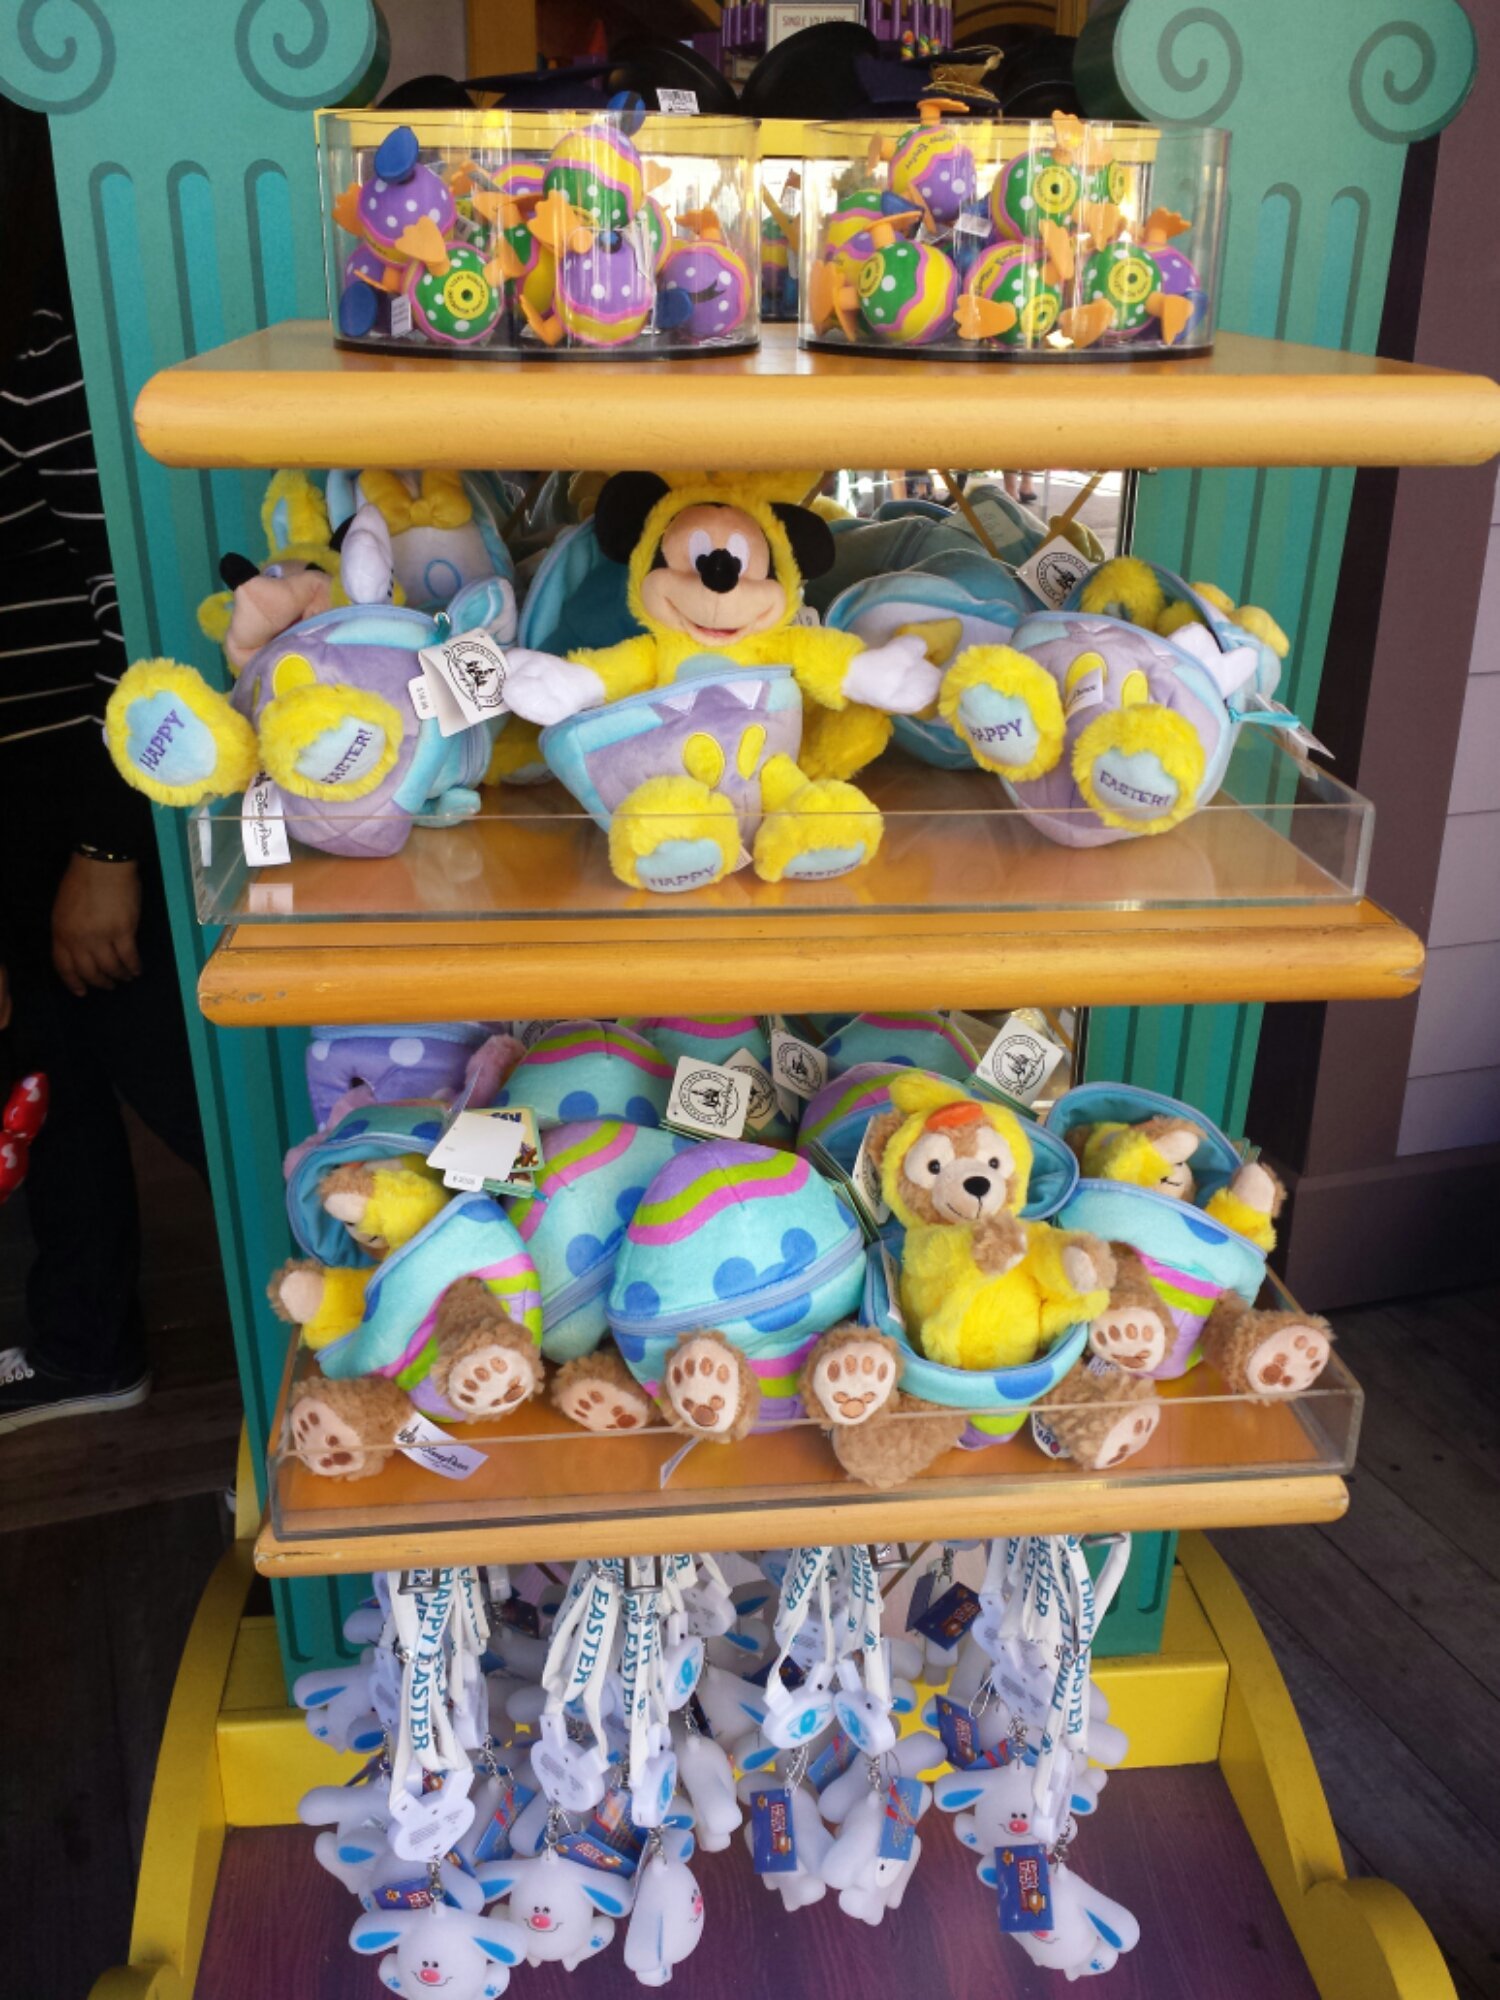 Some Easter merchandise at Boardwalk Bazaar